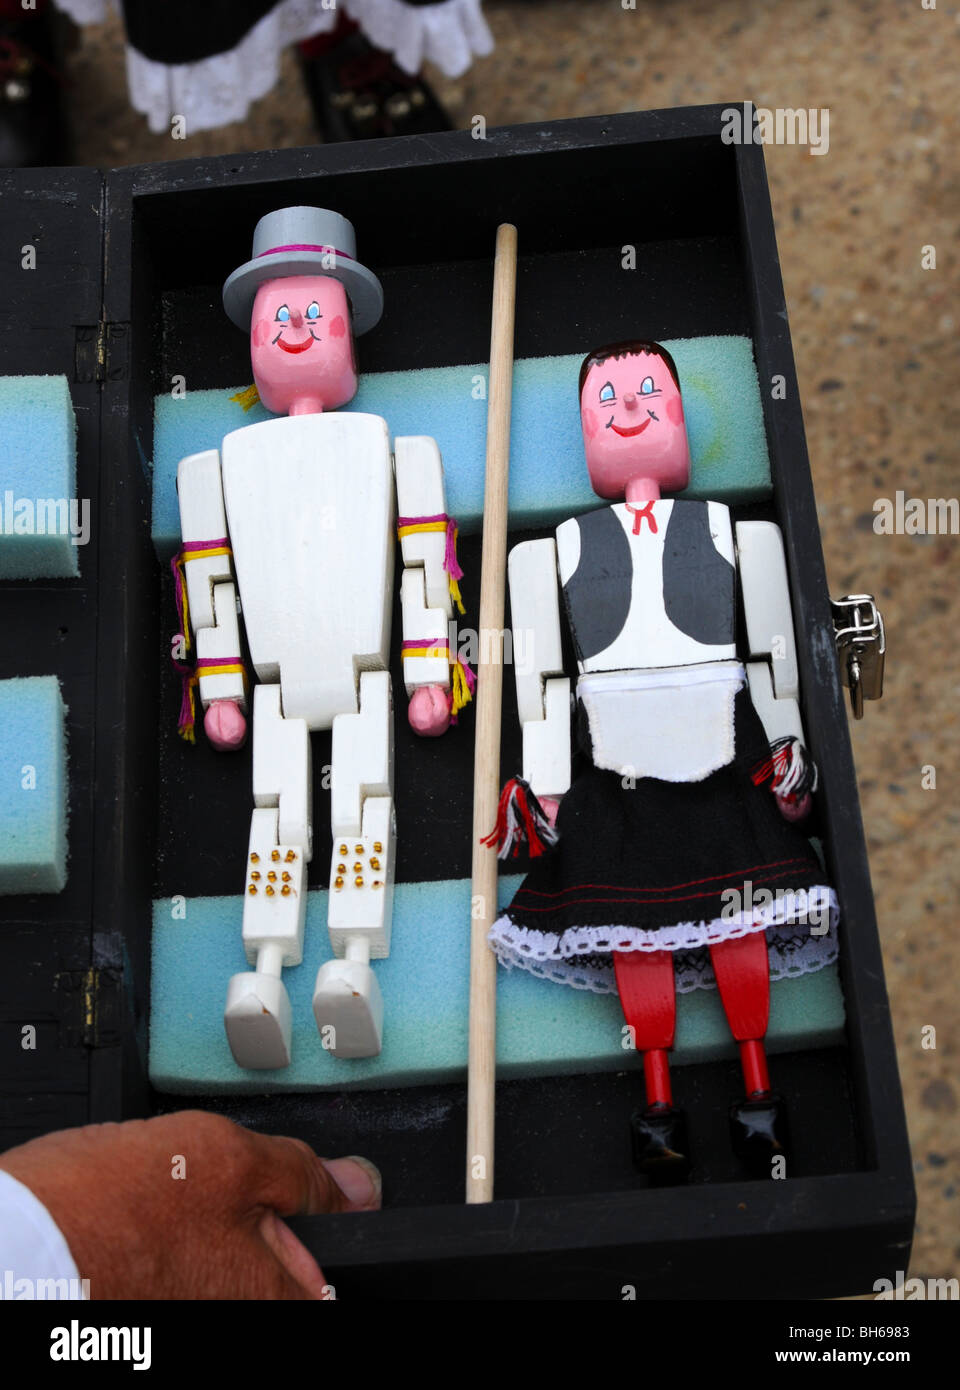 dancing dolls in morris costume still in their box - Stock Image